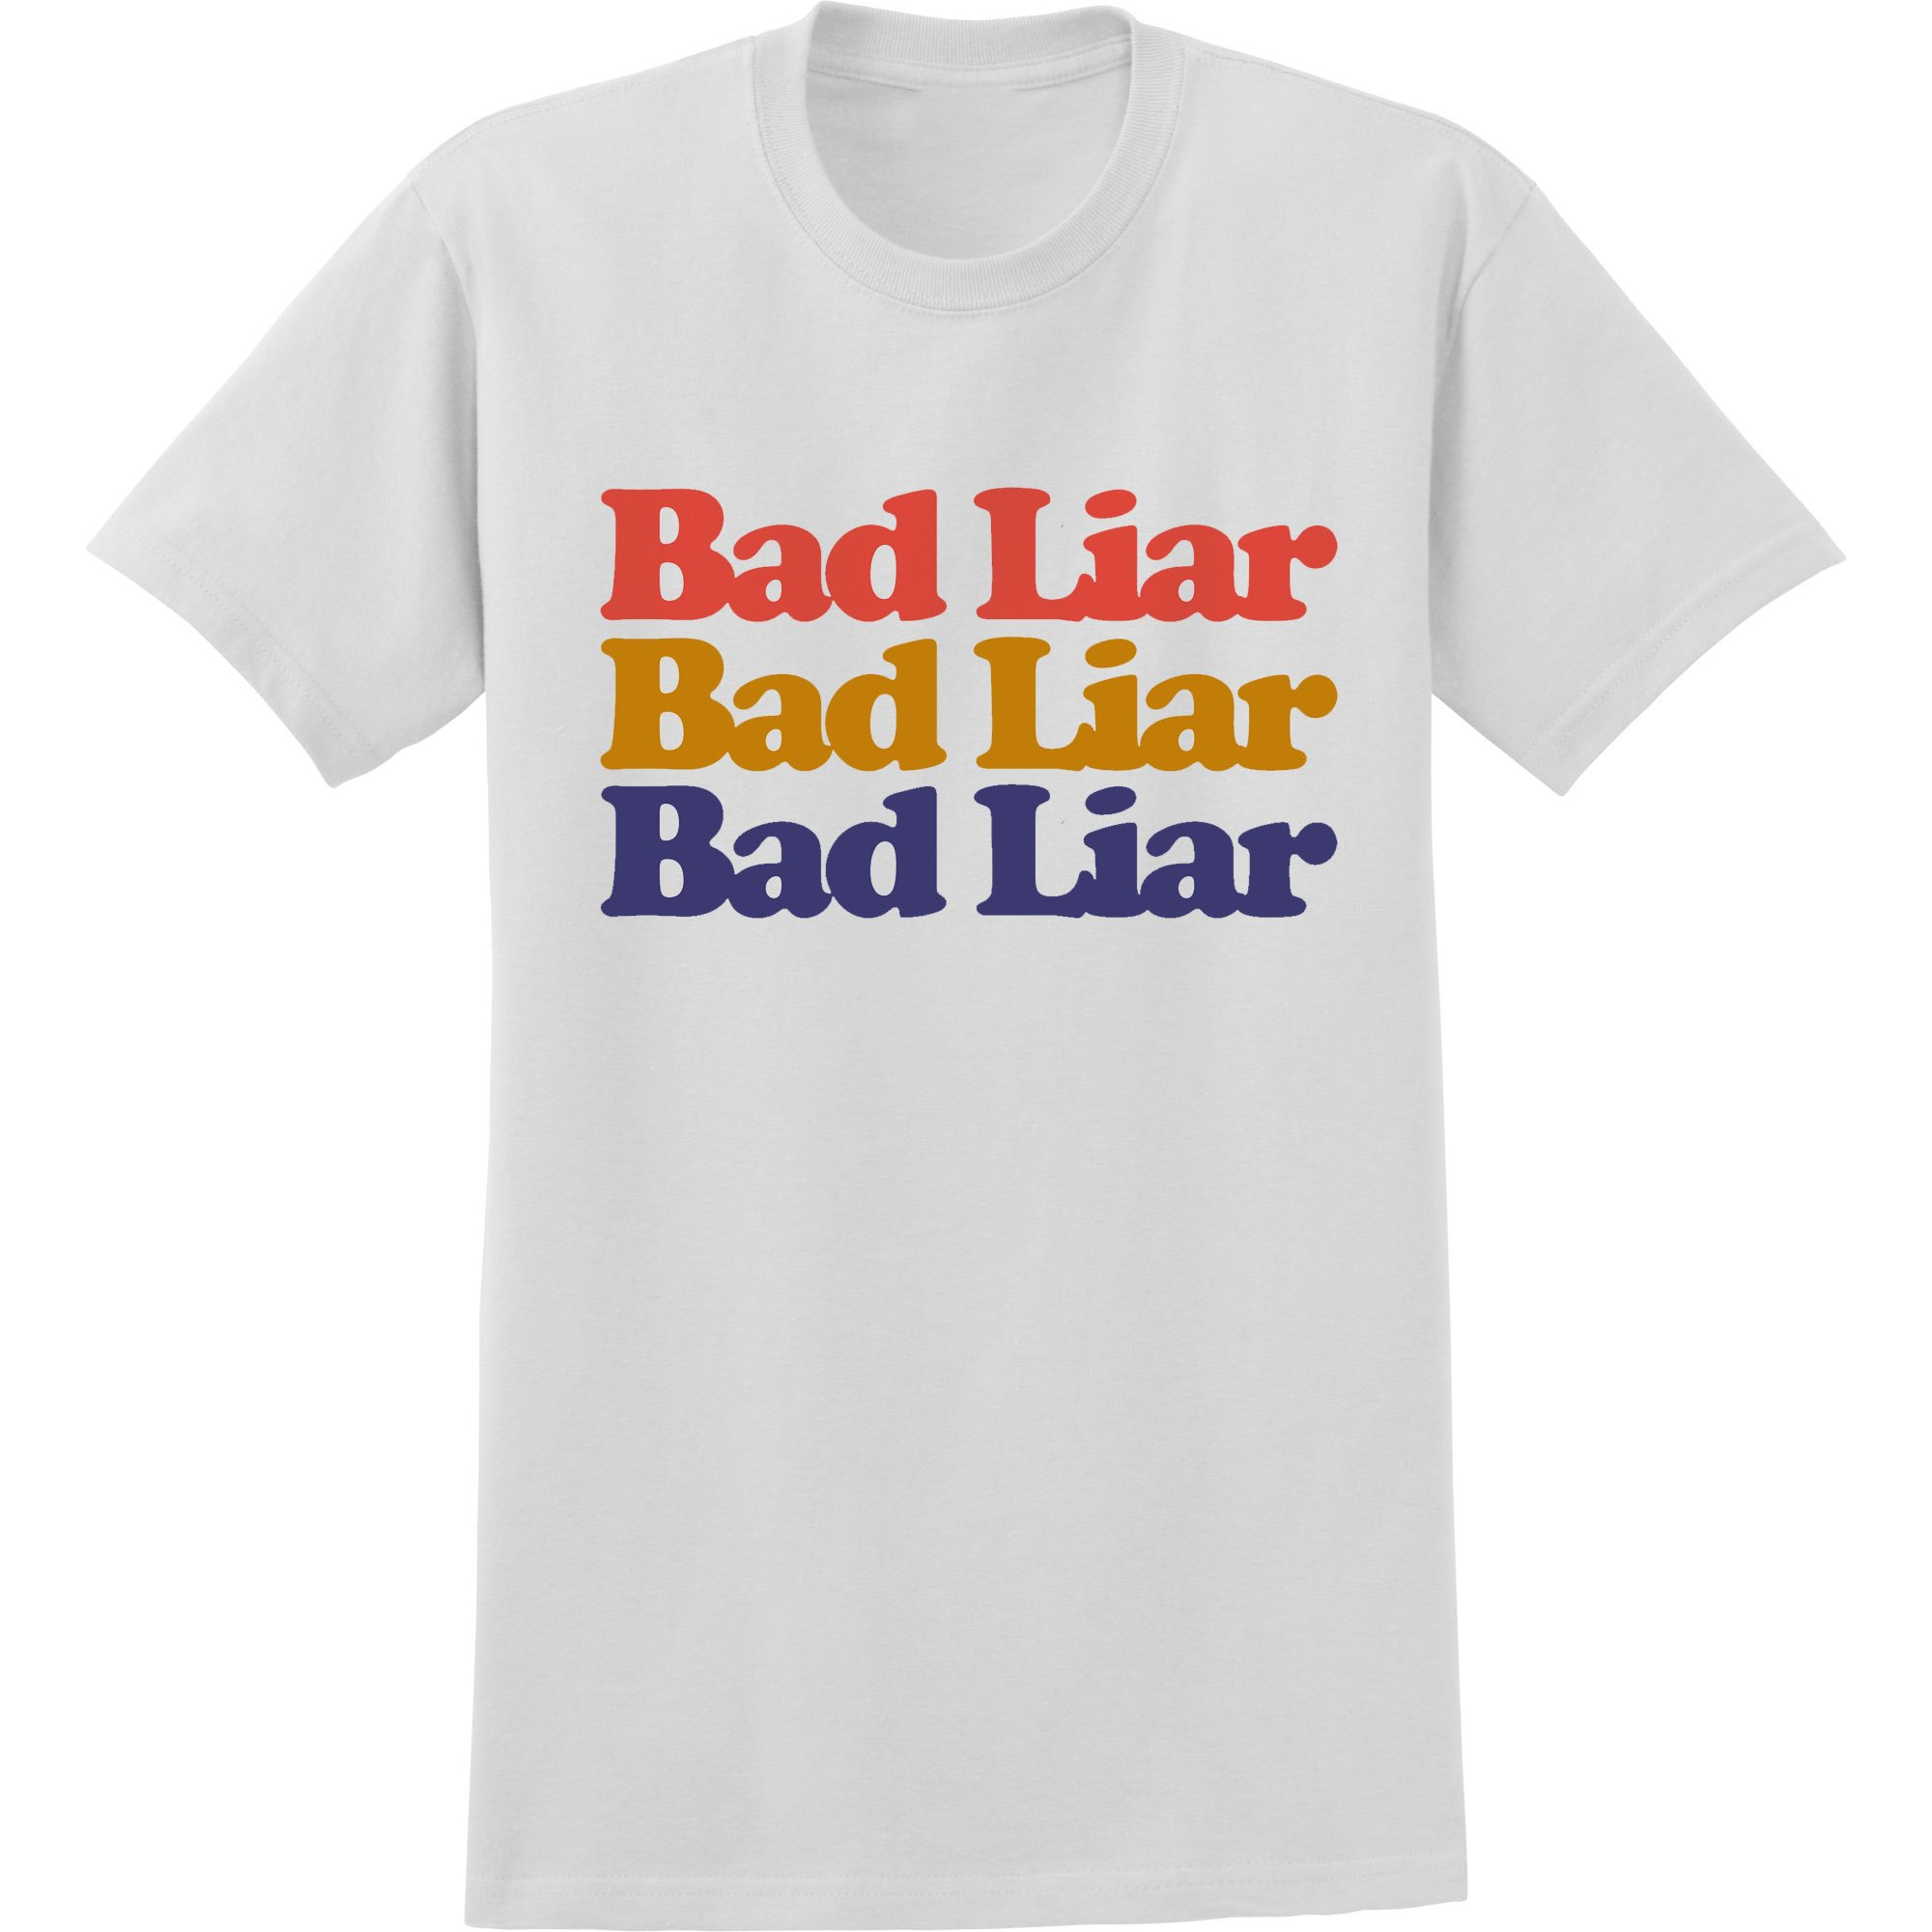 Get exclusive #BadLiar merch available now. https://t.co/GUrFQDsv5B https://t.co/jlxwnVcxSd